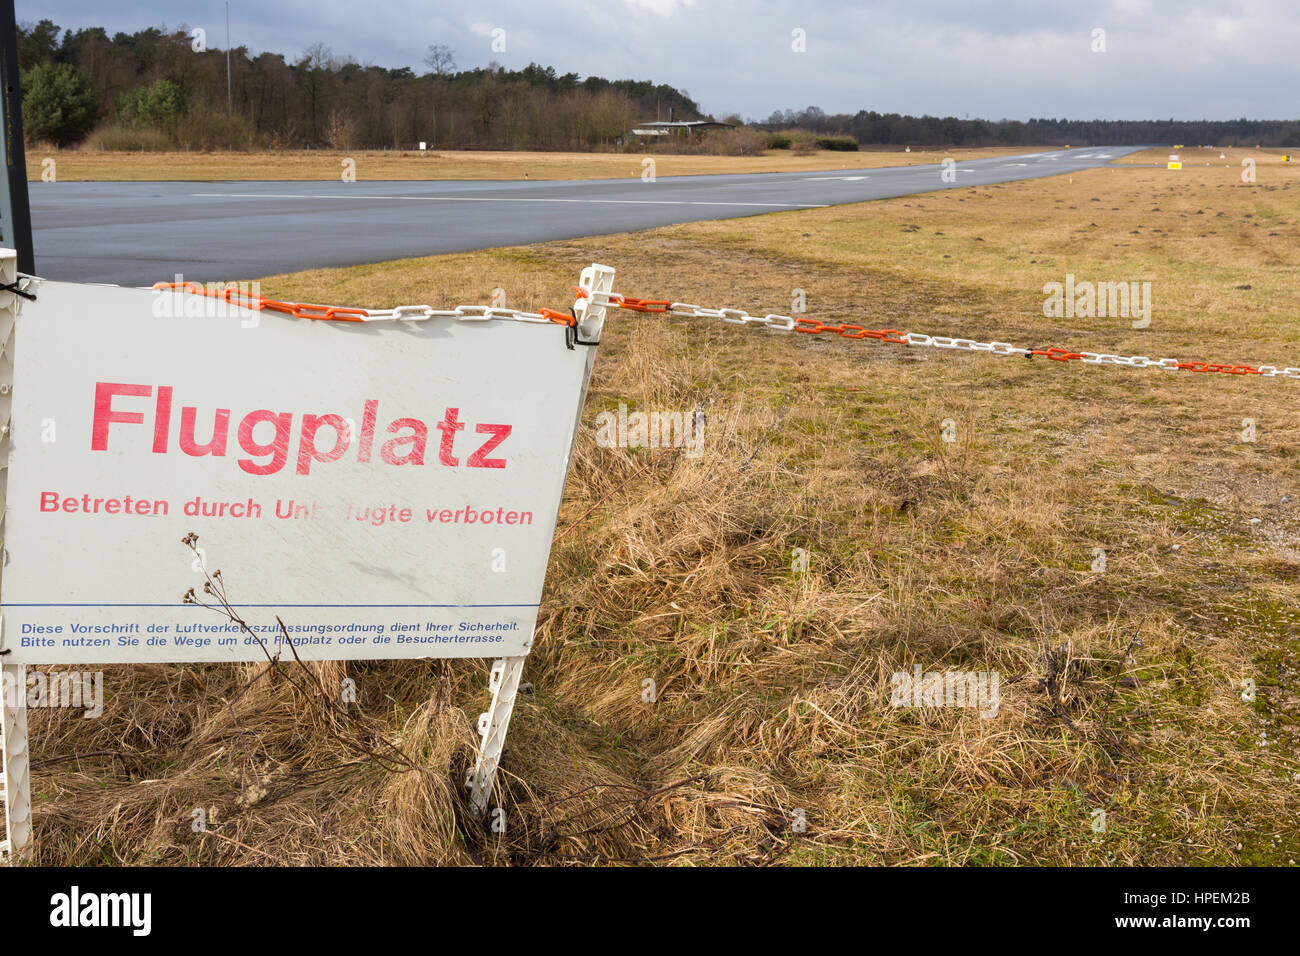 End of runway 29 at Bielefeld-Senne airport, Germany with Flugplatz sign - Stock Image